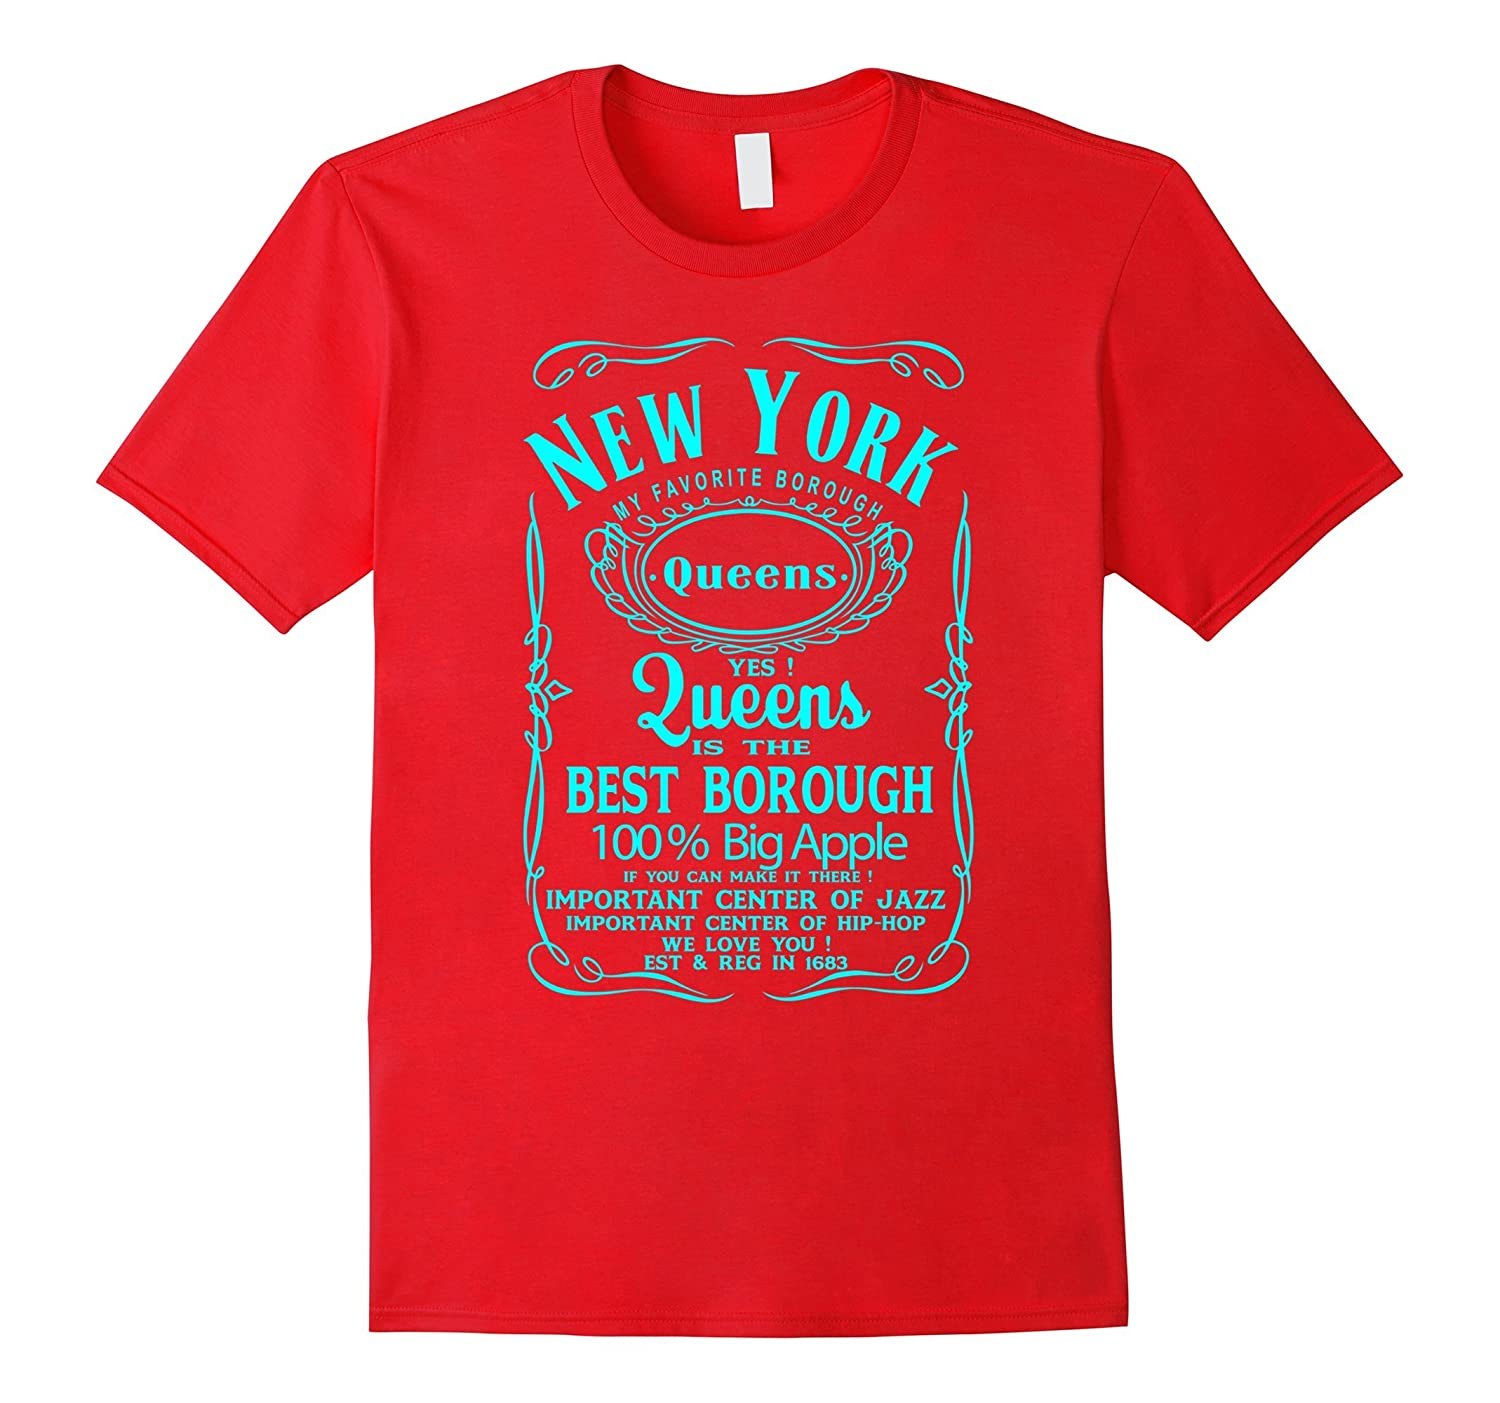 New York City Queens NYC UNITED STATES USA T-Shirt-T-Shirt